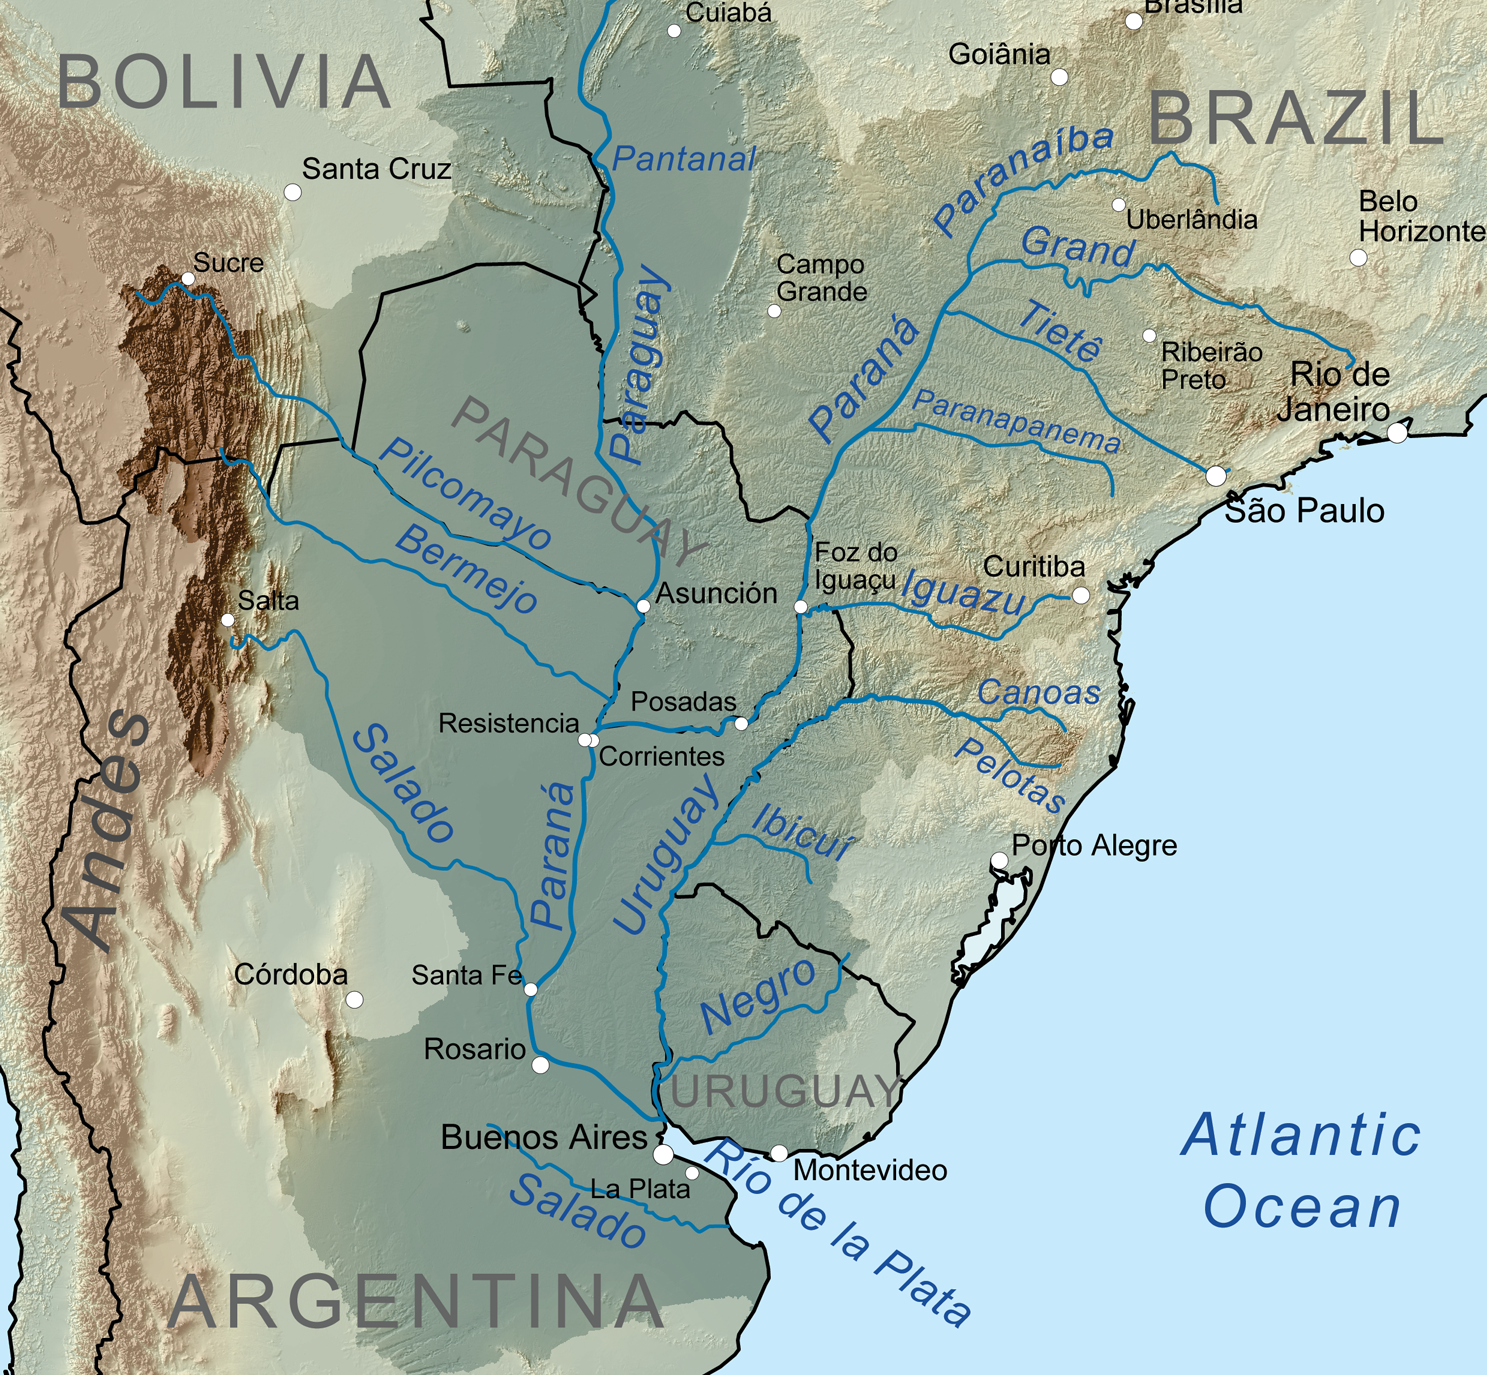 The Paraná River and its tributaries.